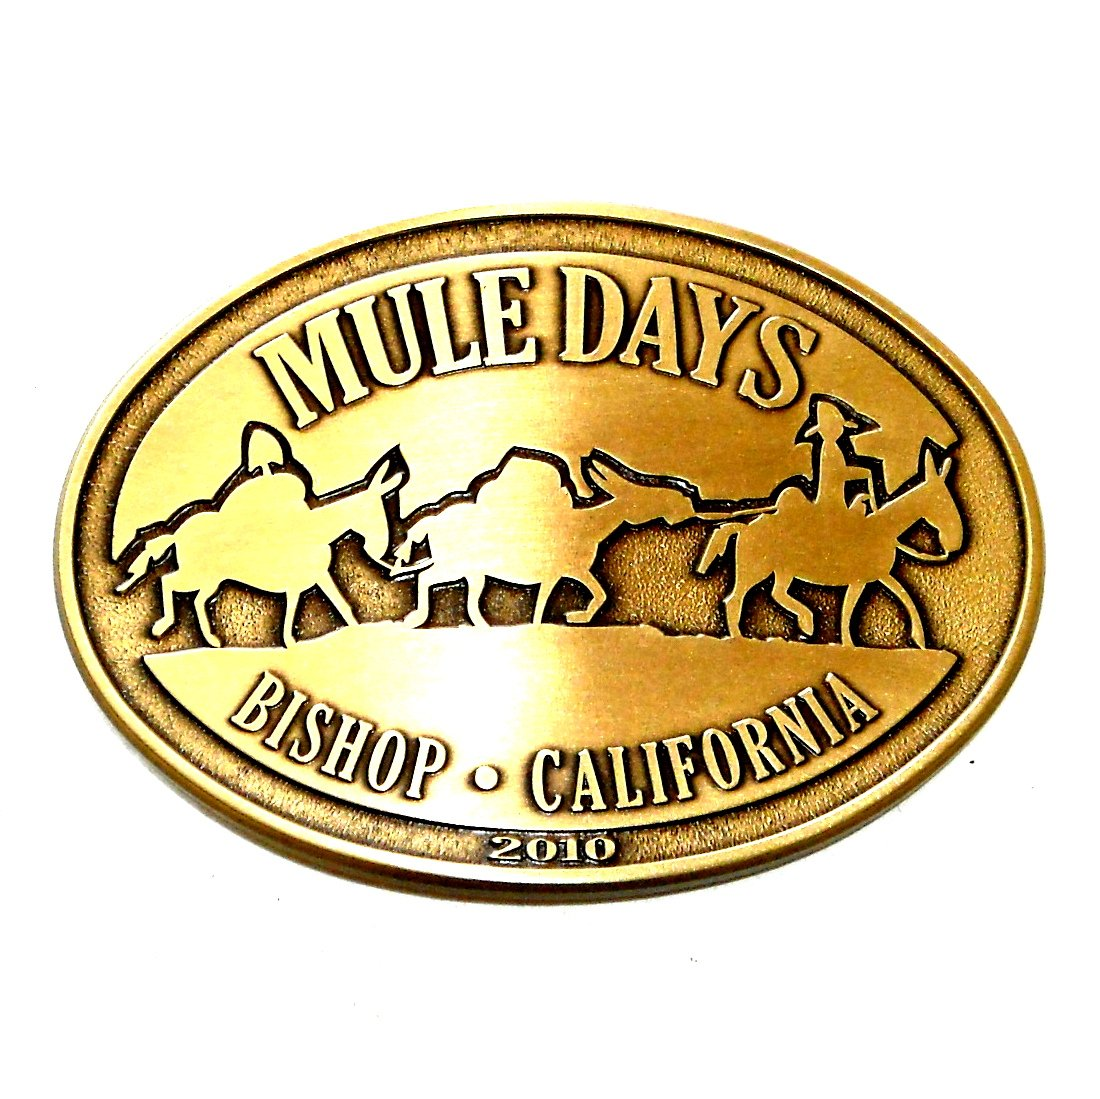 California Bishop Mule Days 2010 Solid Bronze Belt Buckle